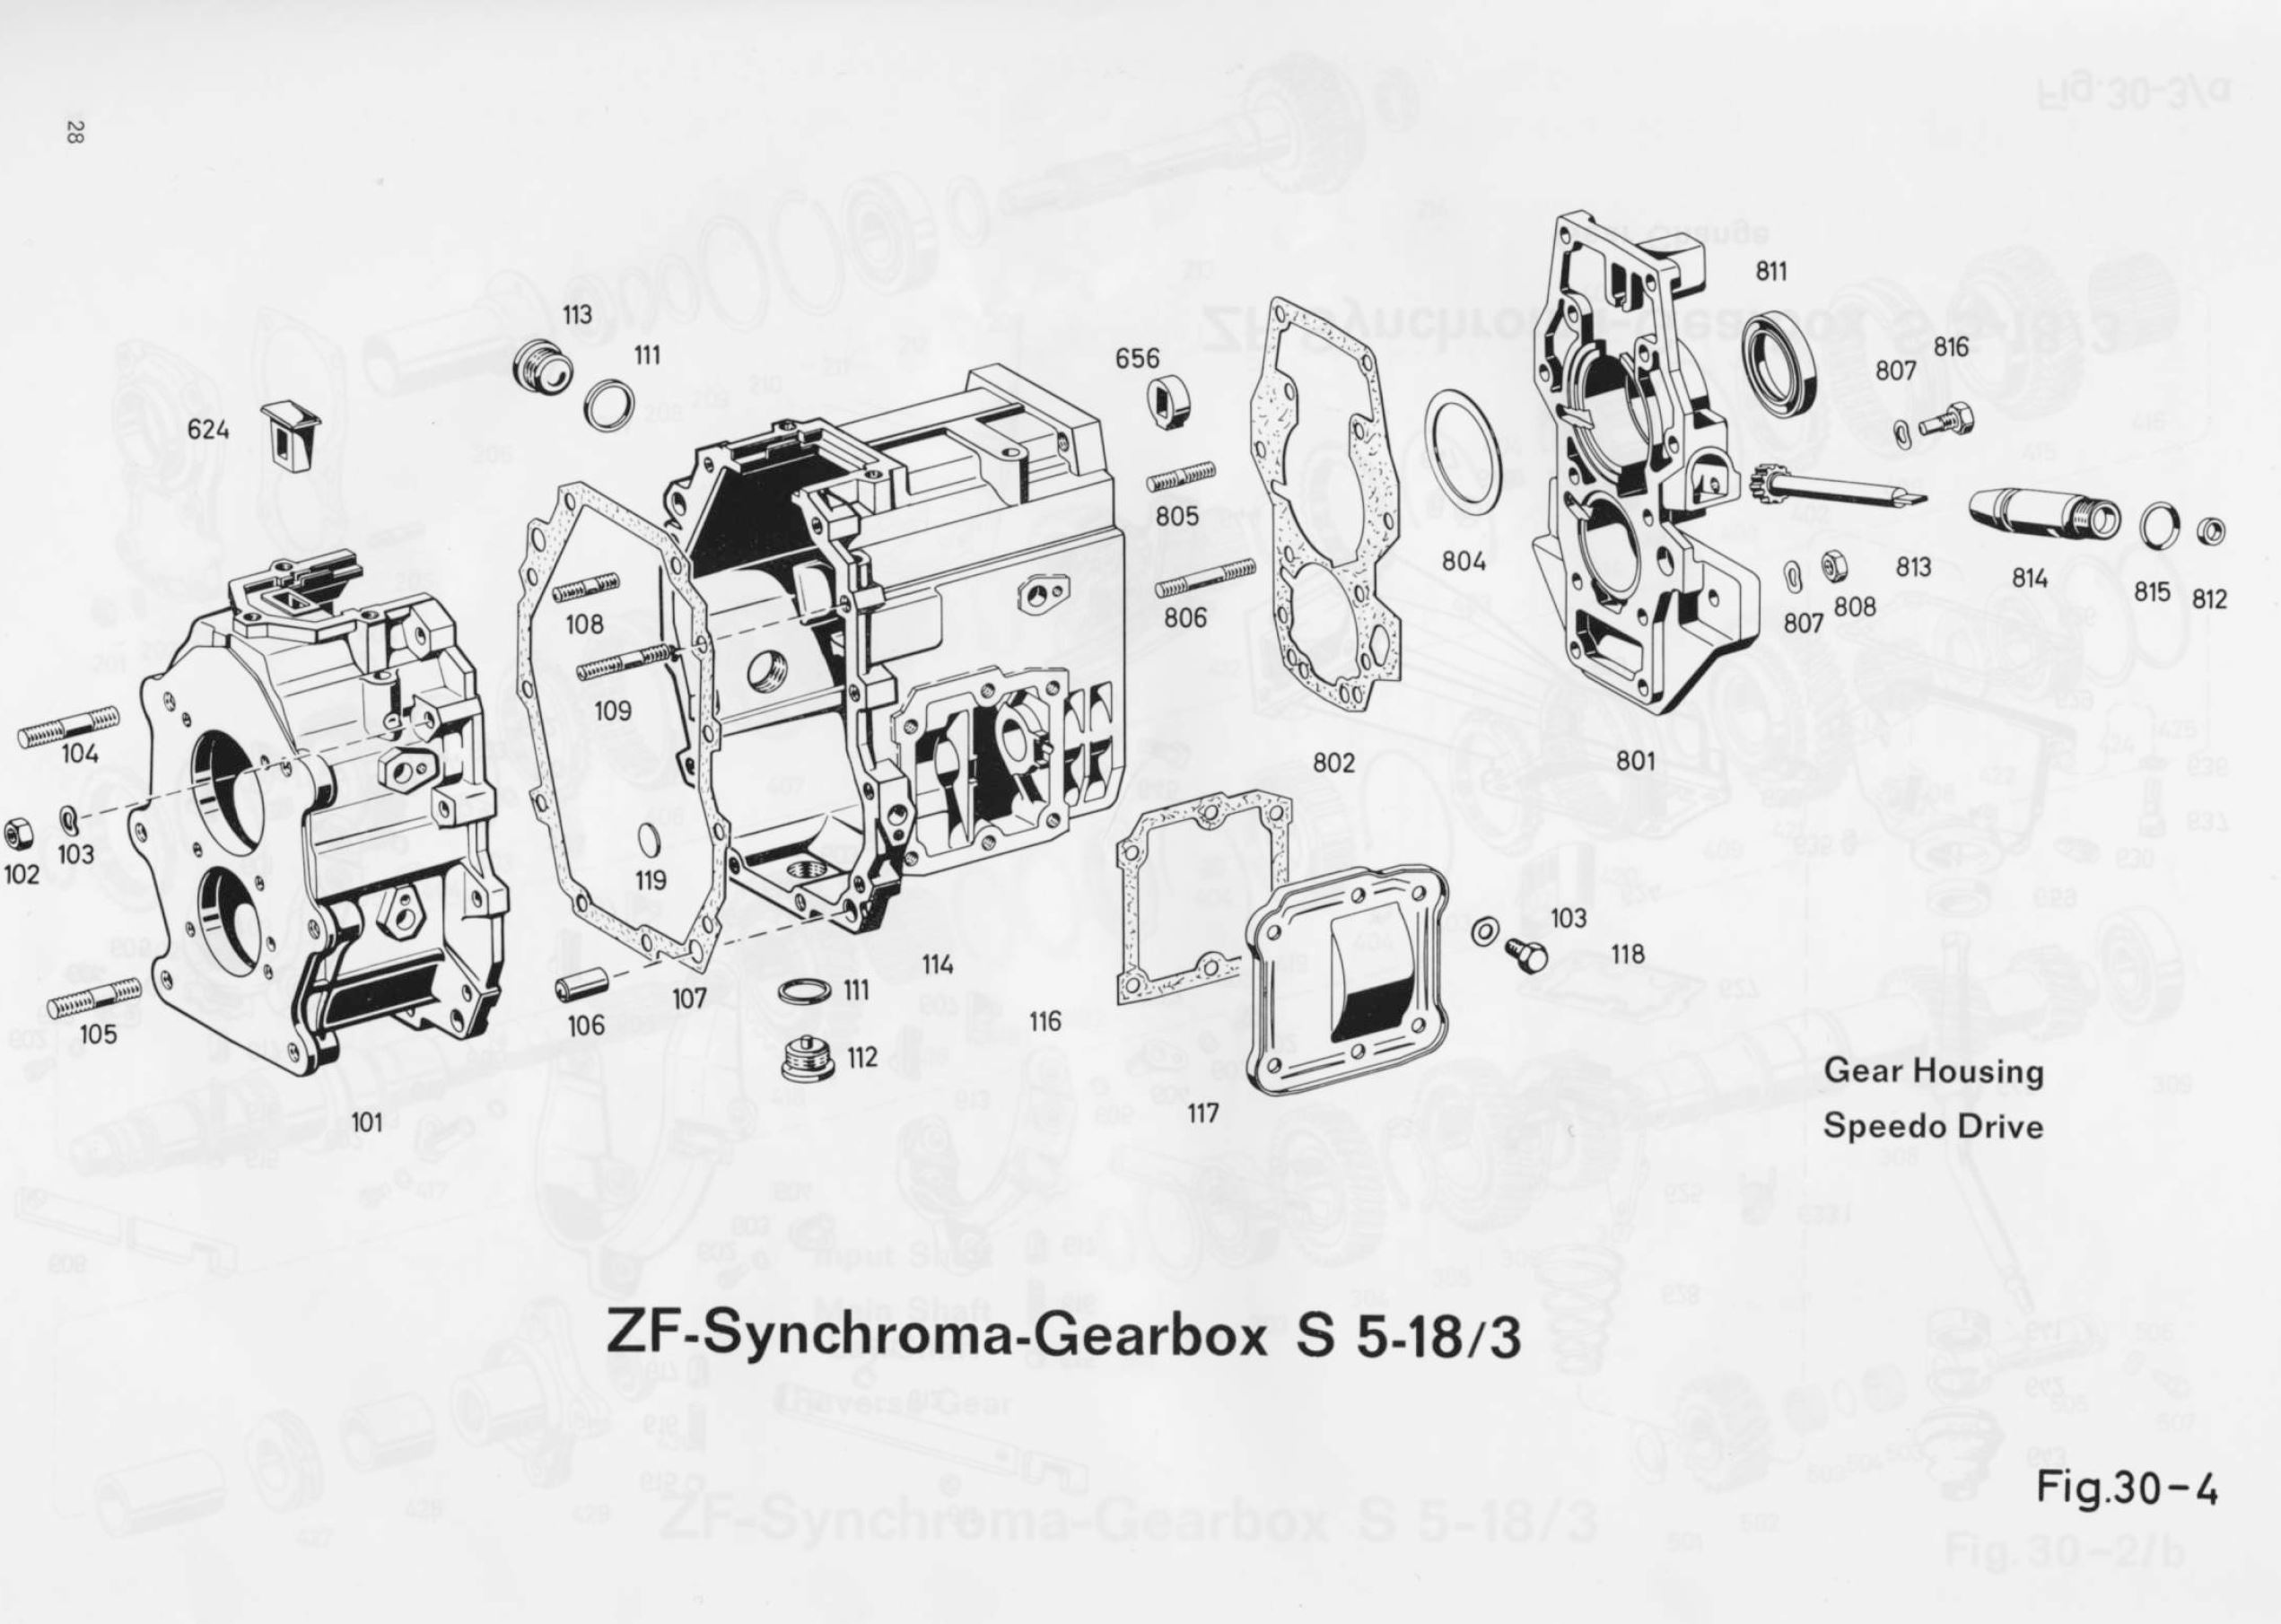 Zf Synchroma Gearbox S 5 18 3